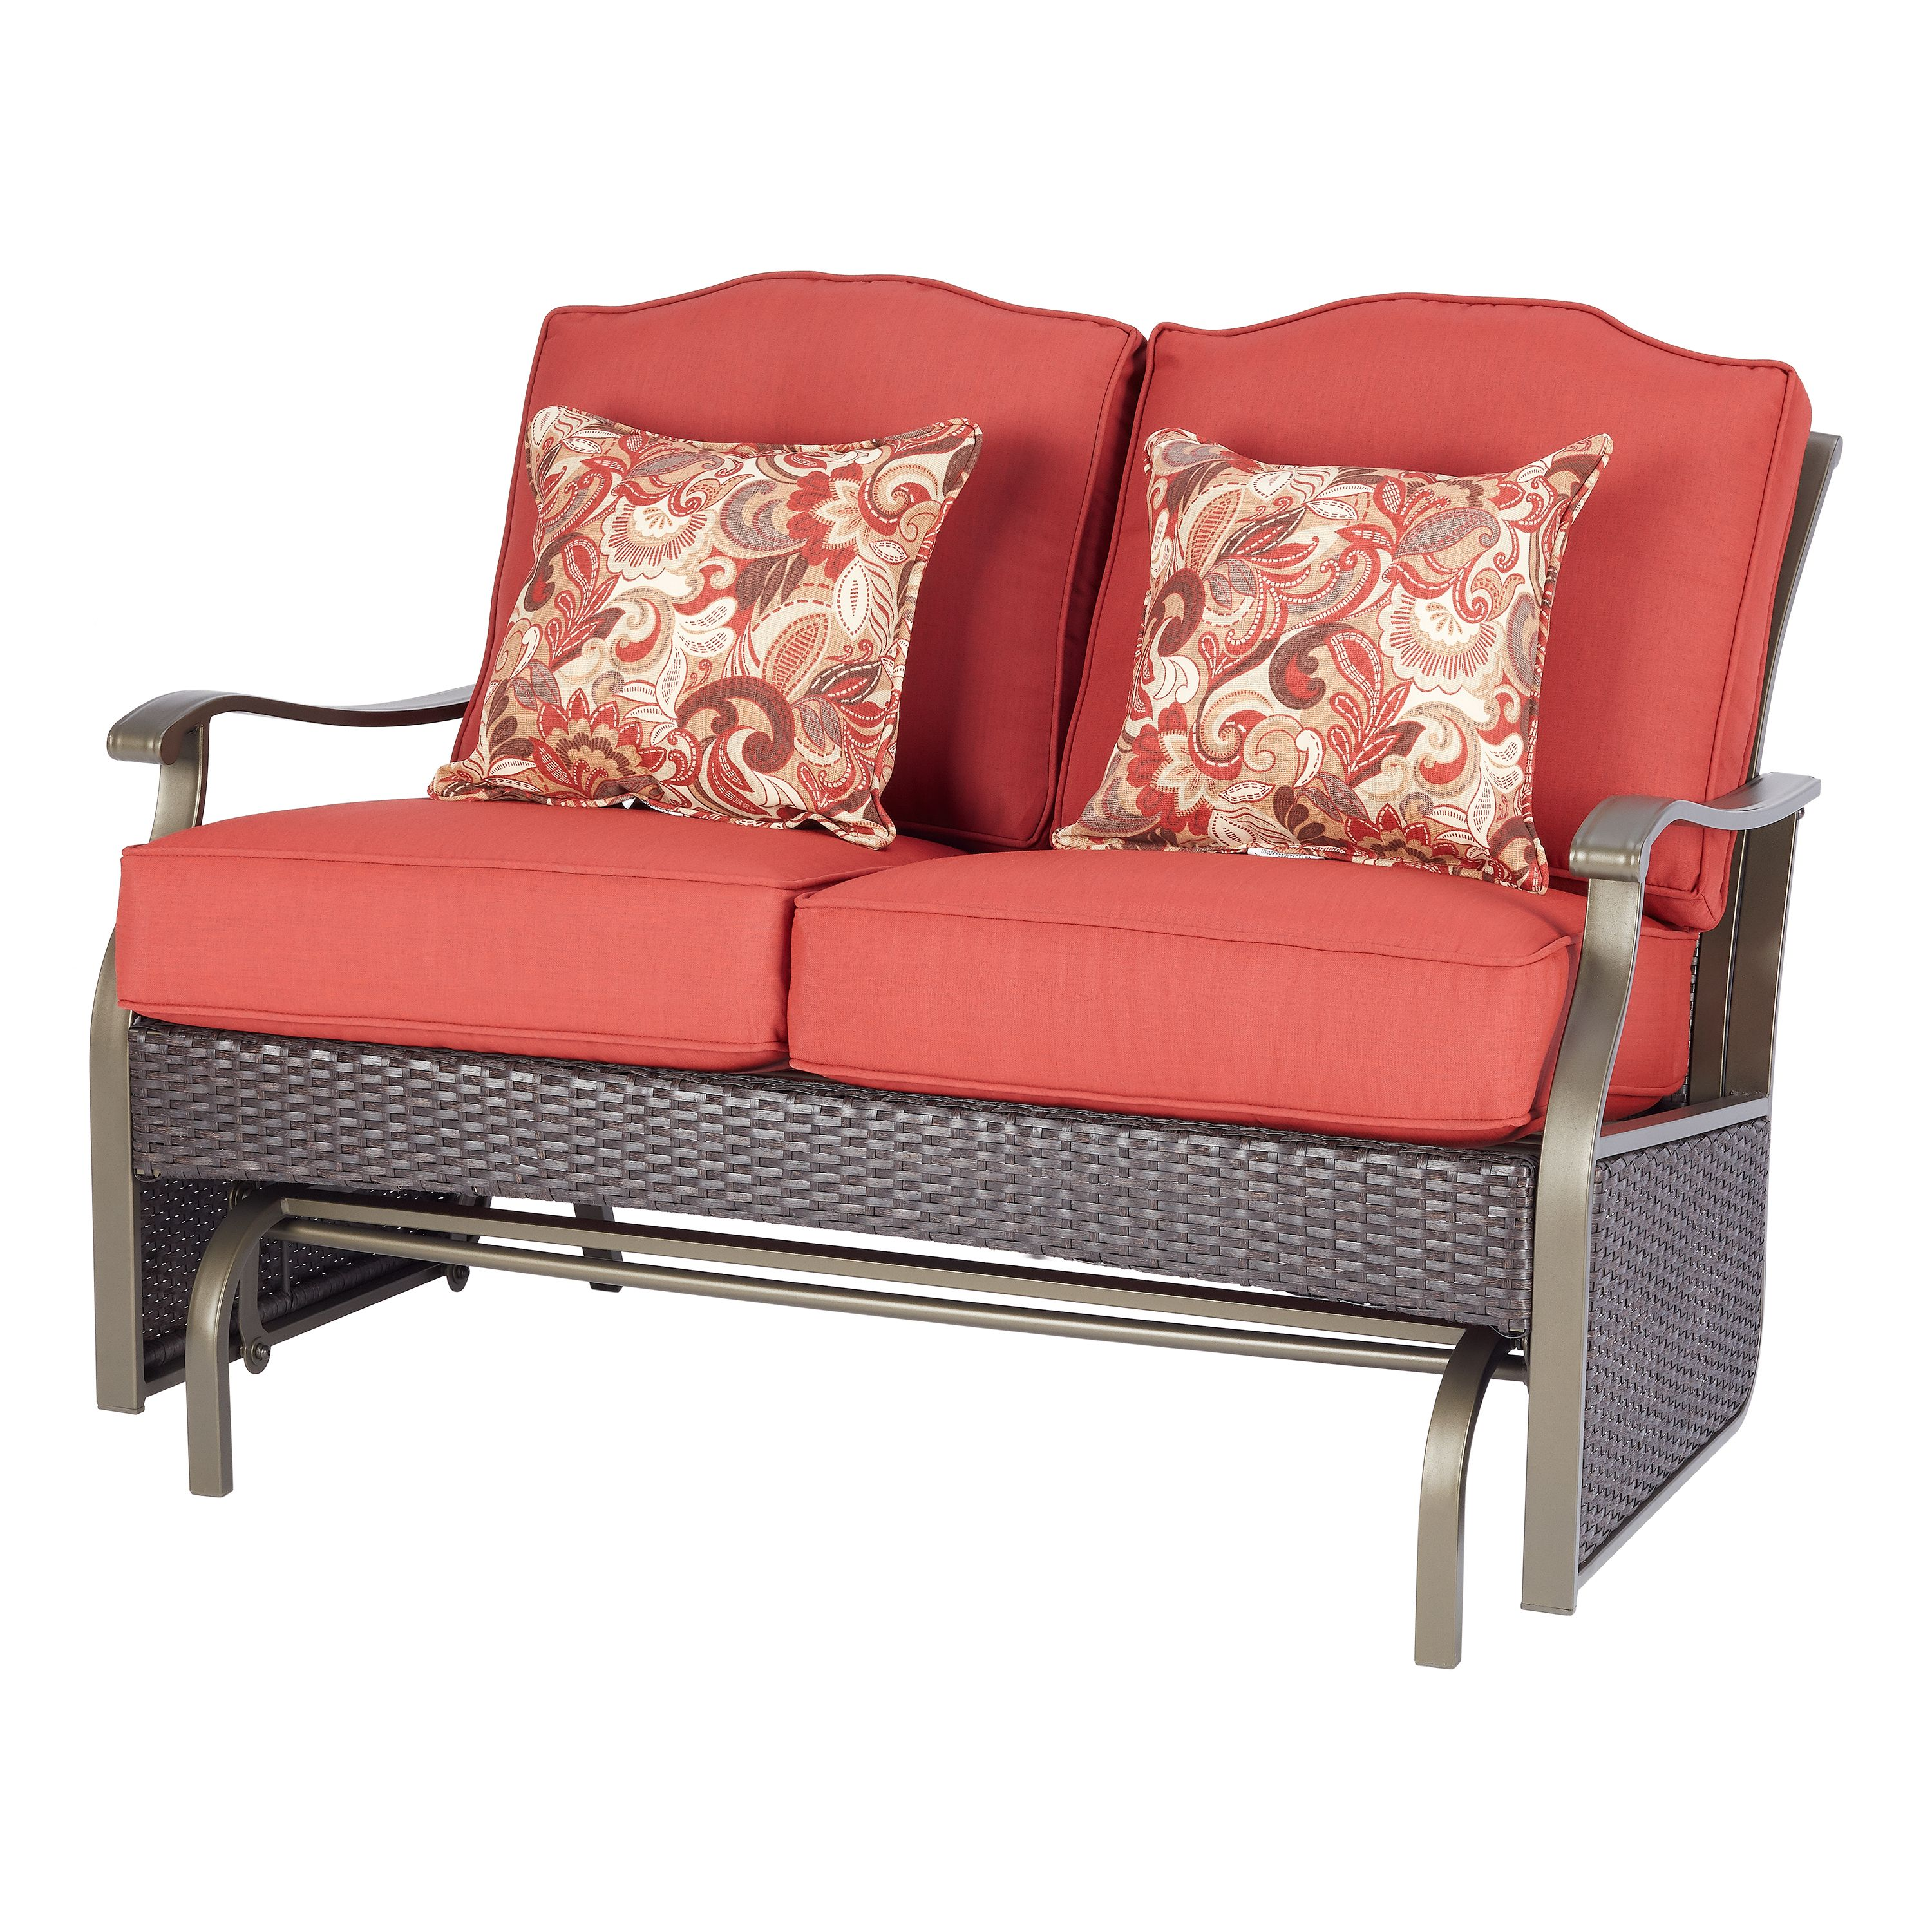 bdf3a0186b147c22f81b2c53a7a095ca - Better Homes And Gardens Providence Outdoor Daybed